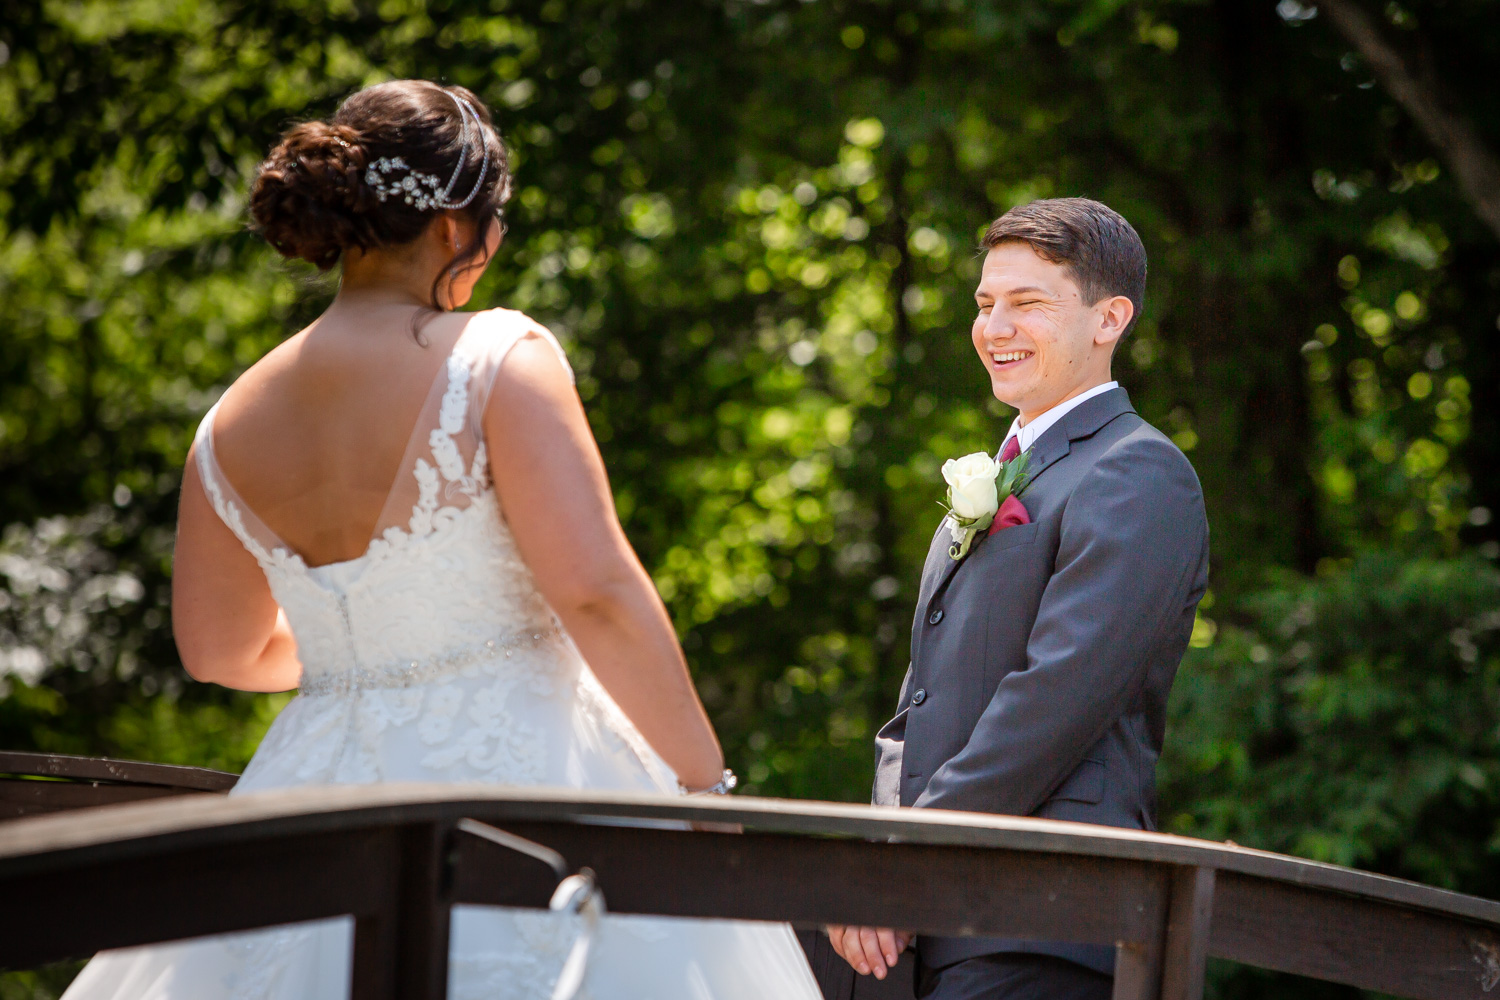 Finger-Lakes-Wedding-Photographer-Joe-Hy-Owego-NY-7191.jpg